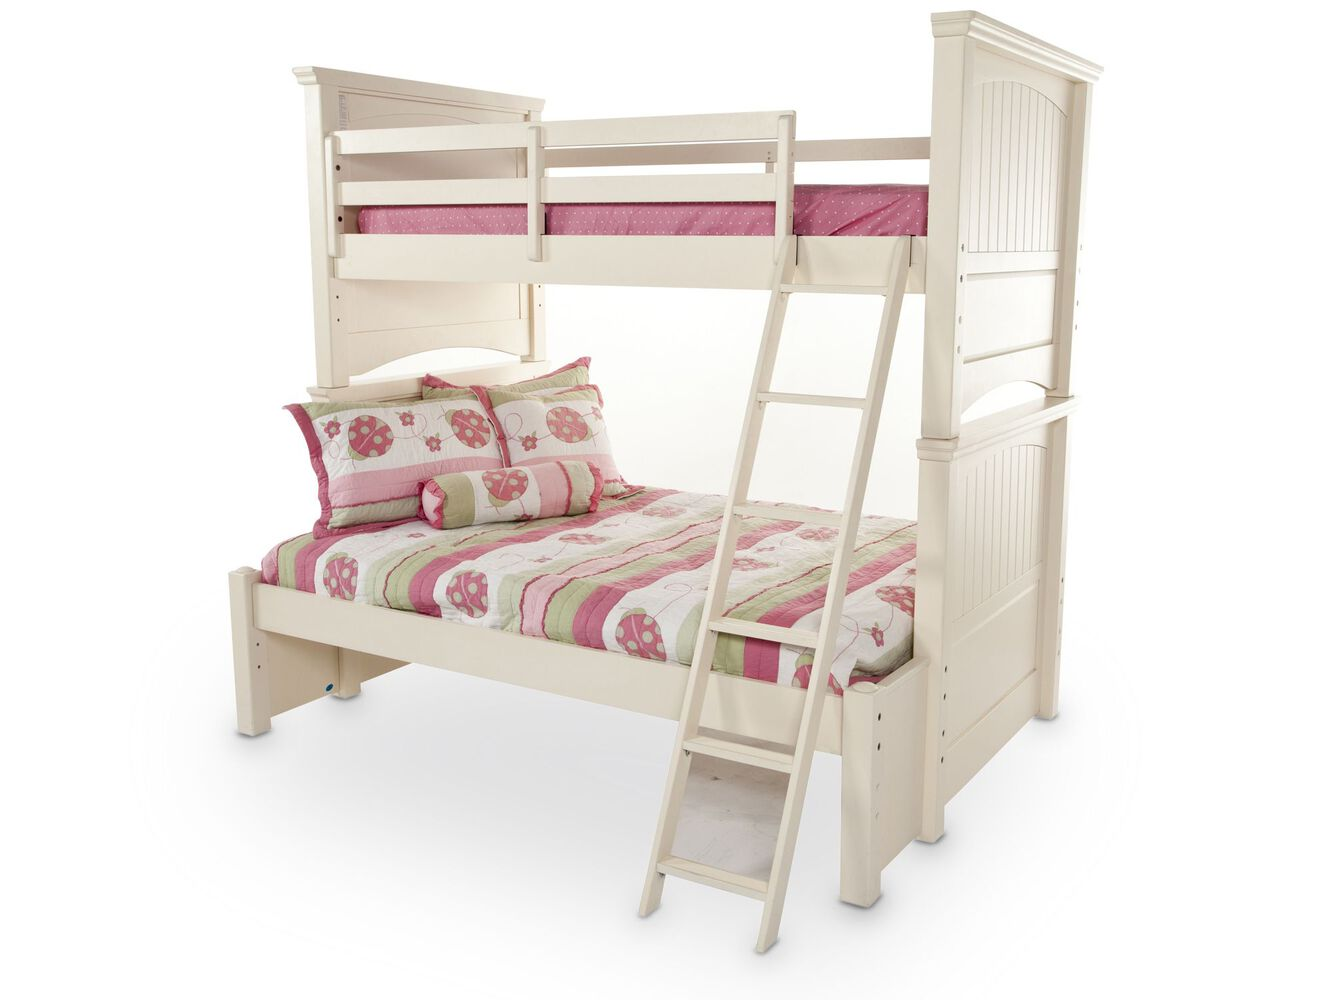 Lovely ideas of mathis brothers bunk beds best home plans and tulsa for sale ok oklahoma loft built in with steps bed icon pull out queen rustic | WH Gallery.